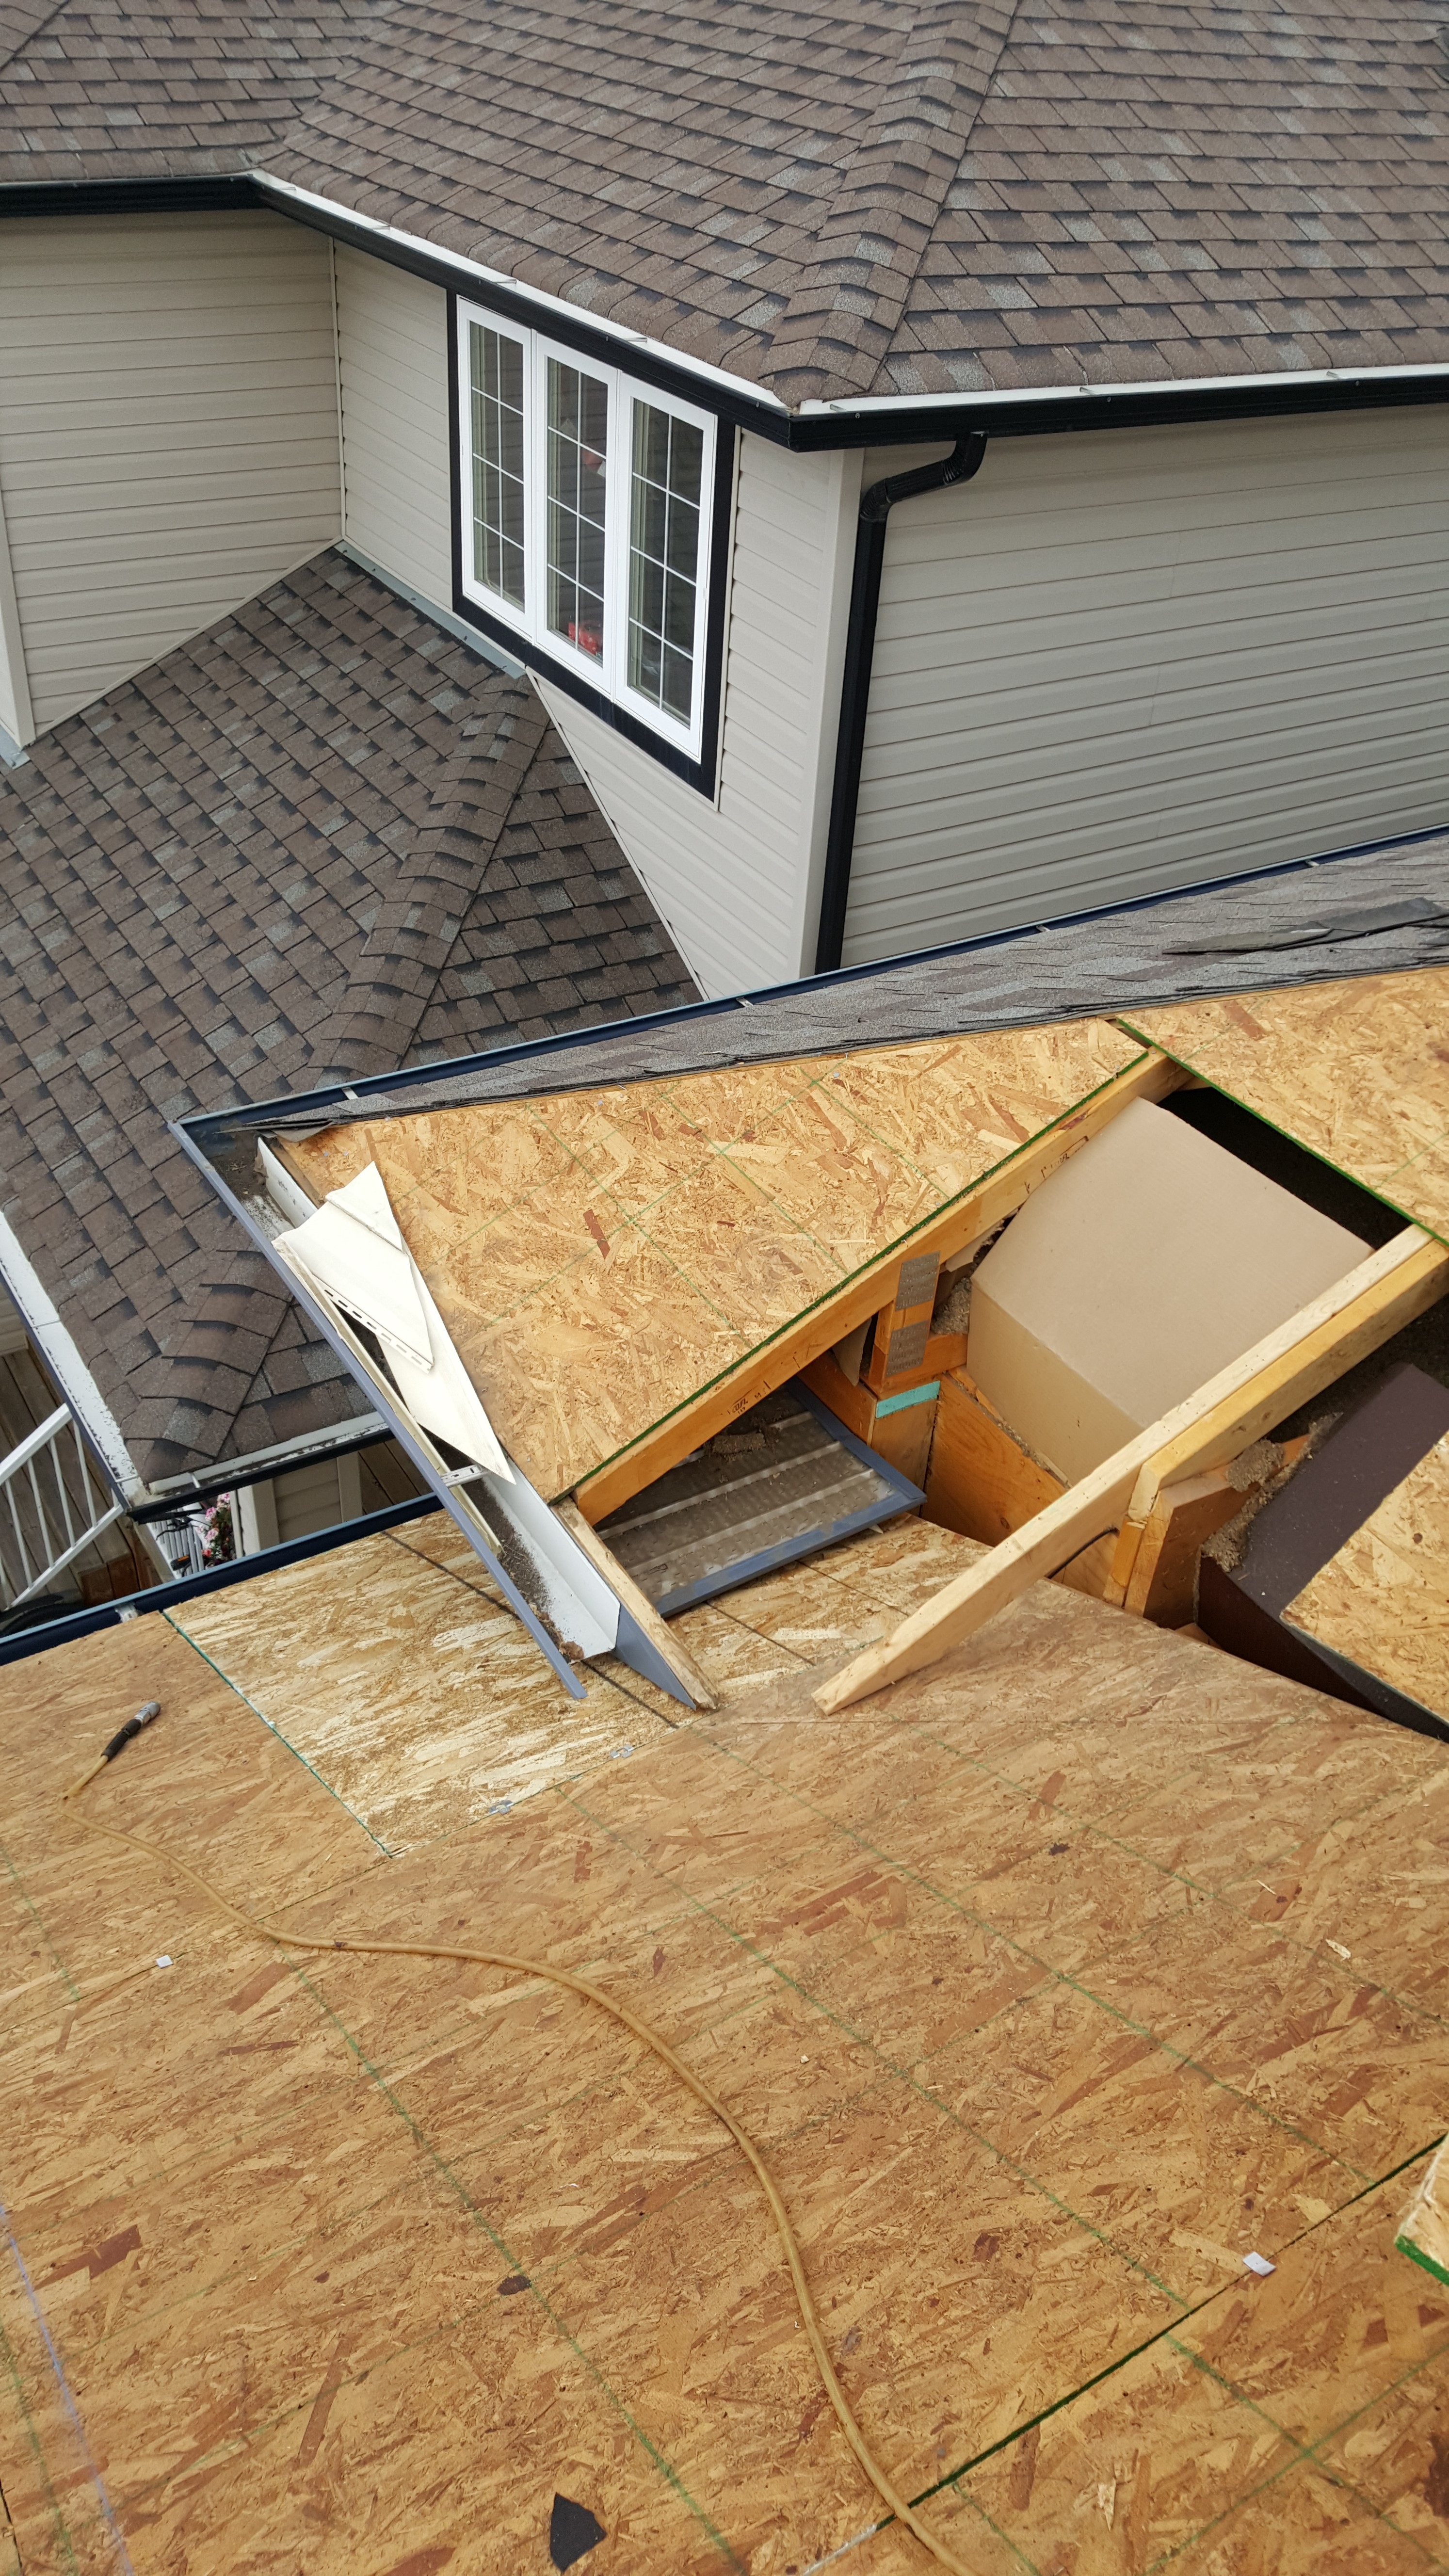 Roof repair in Spruce Grove